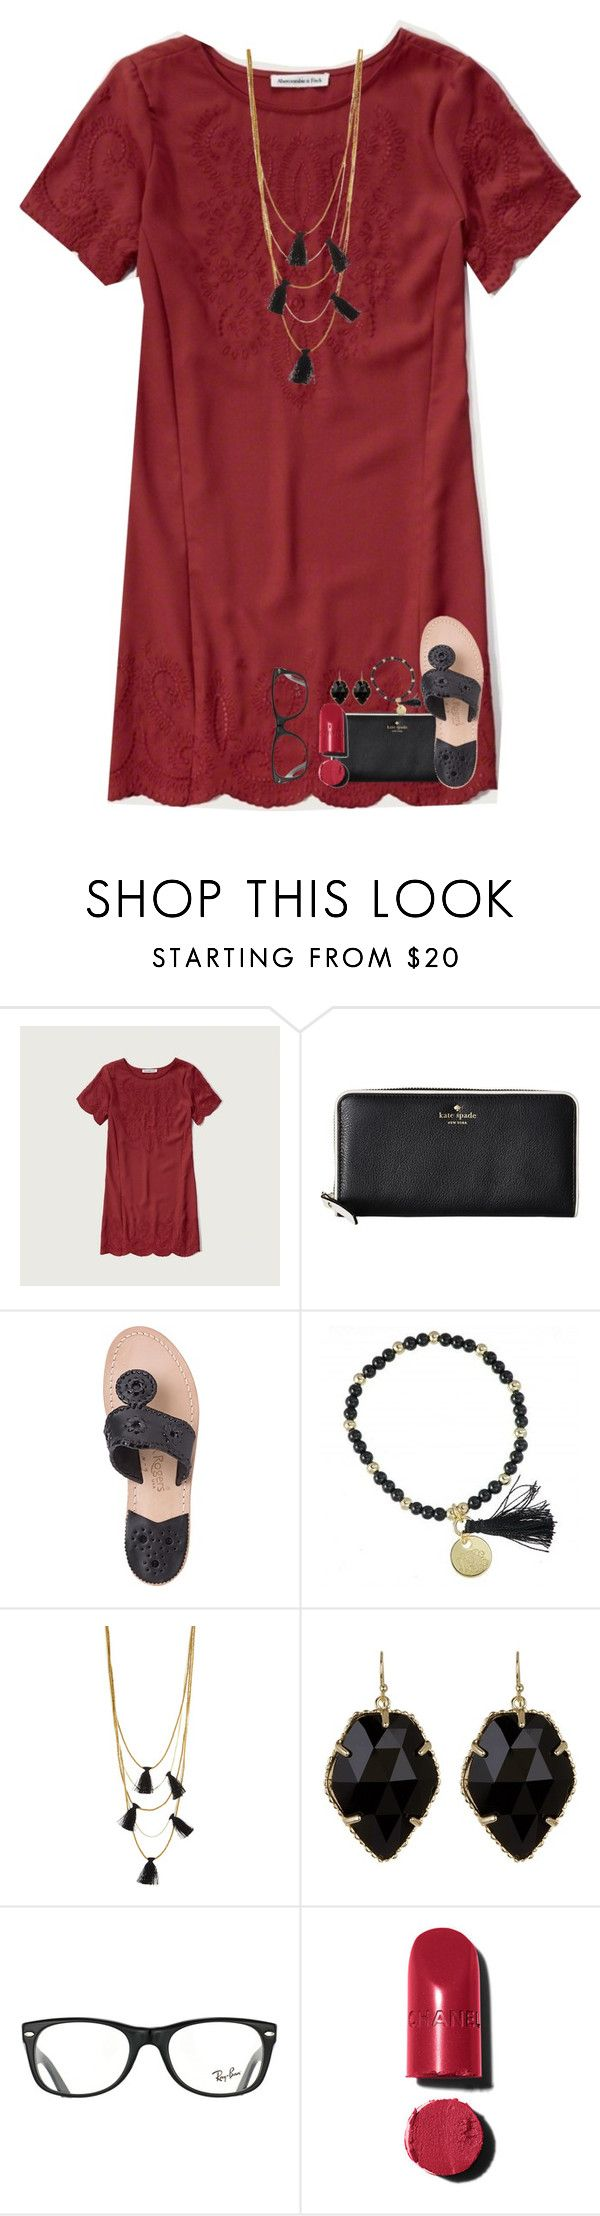 """""""day two of martha's contest!"""" by lindsaygreys ❤ liked on Polyvore featuring Abercrombie & Fitch, Kate Spade, Jack Rogers, NAKAMOL, Kendra Scott, Ray-Ban, Chanel and oneyearformartha"""